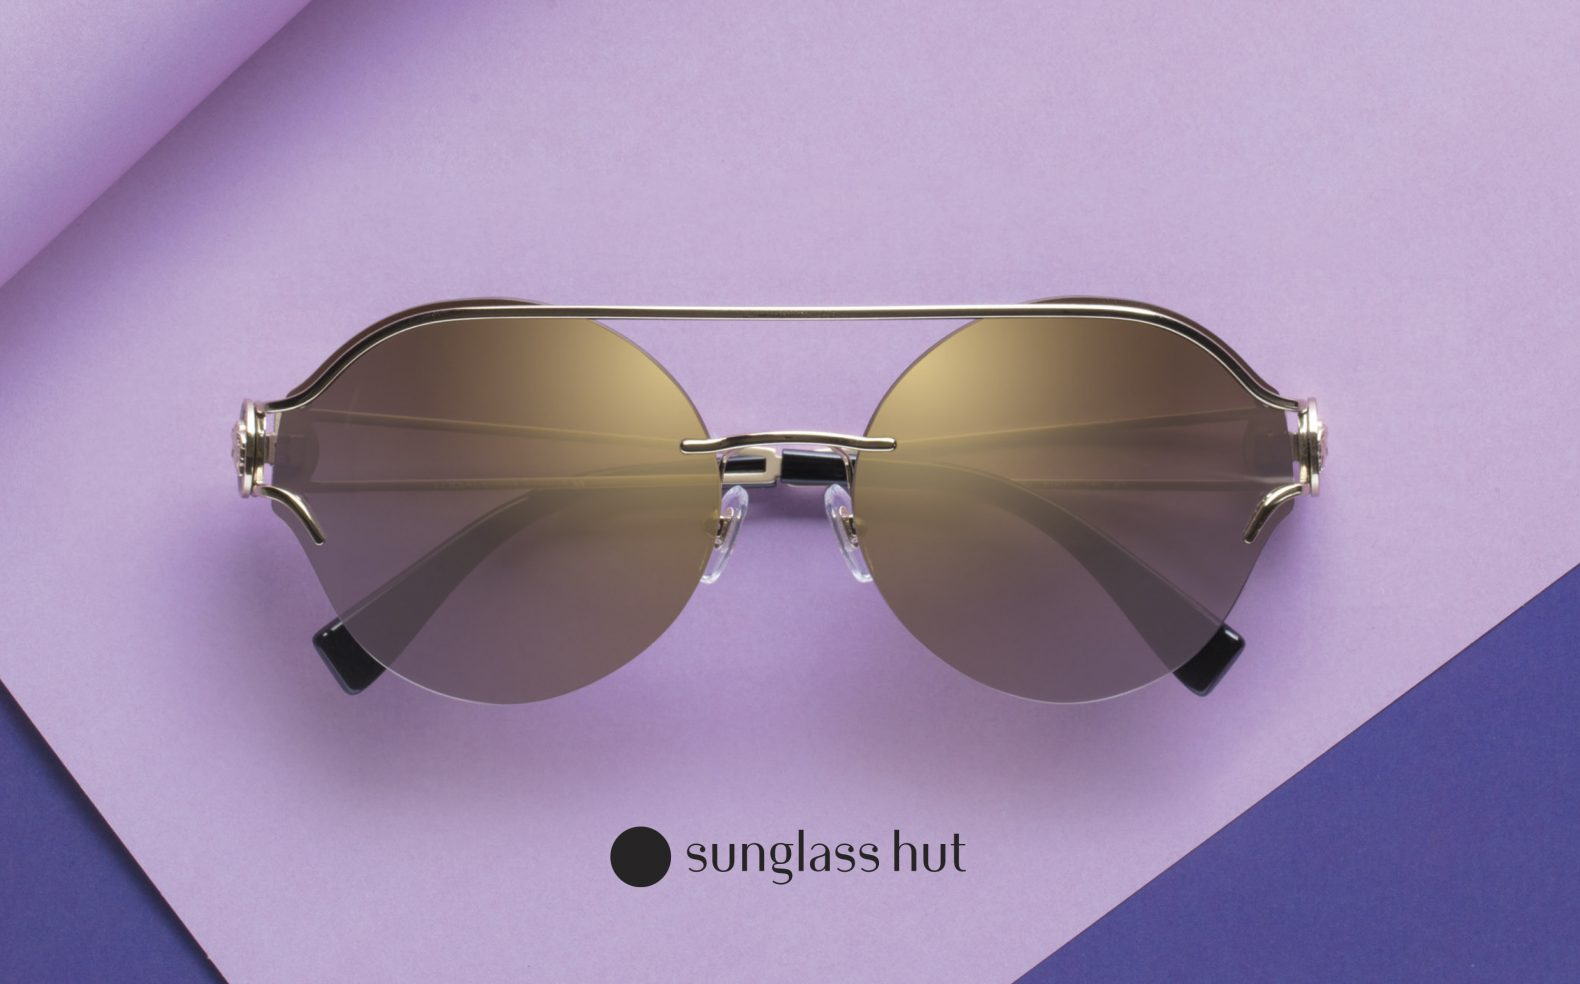 Professional product photograph of a pair of chic sunglasses on a background of purple colored paper with Sunglass Hut logo.